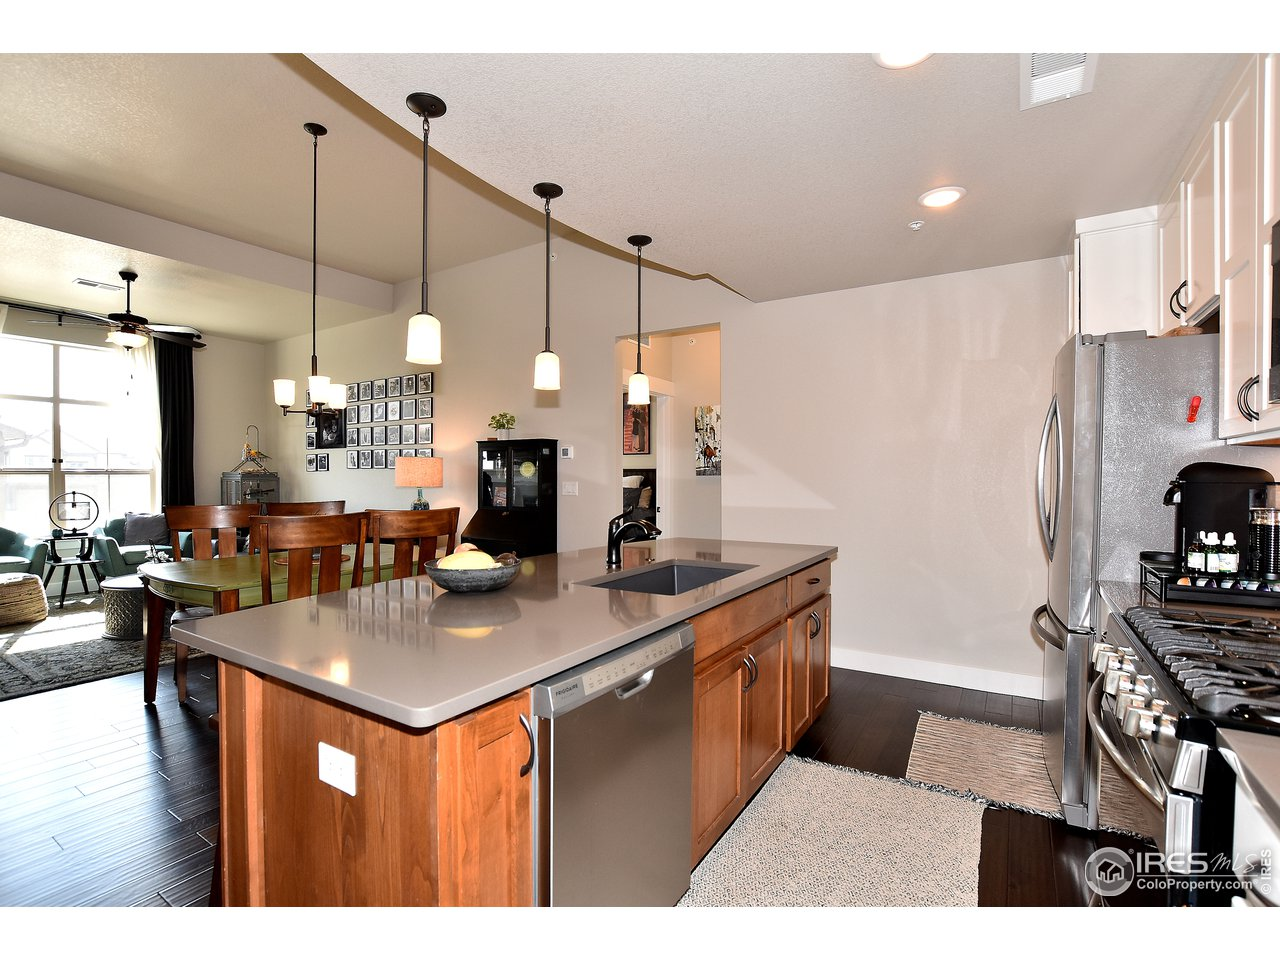 Perfect sized kitchen w/ quartz counters and upgraded granite composite sink and faucet